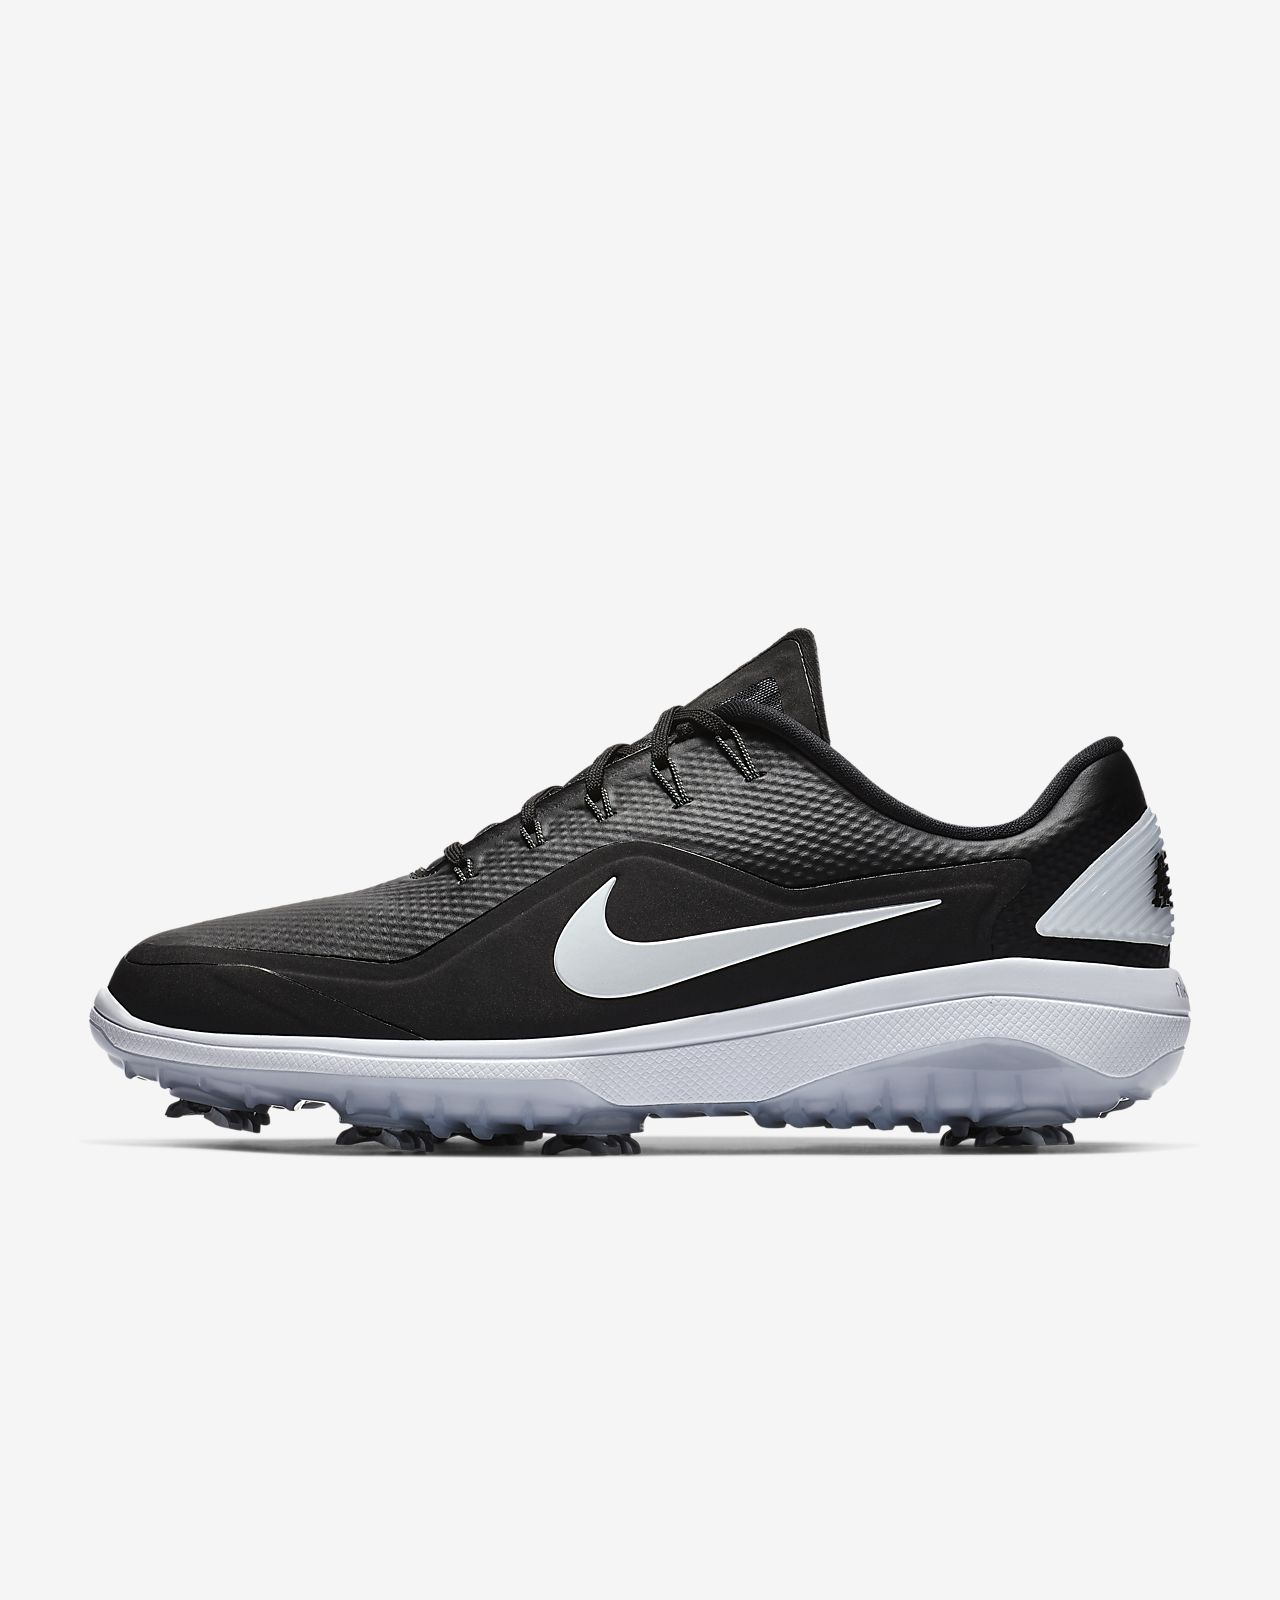 Nike React Vapor 2 Men's Golf Shoe